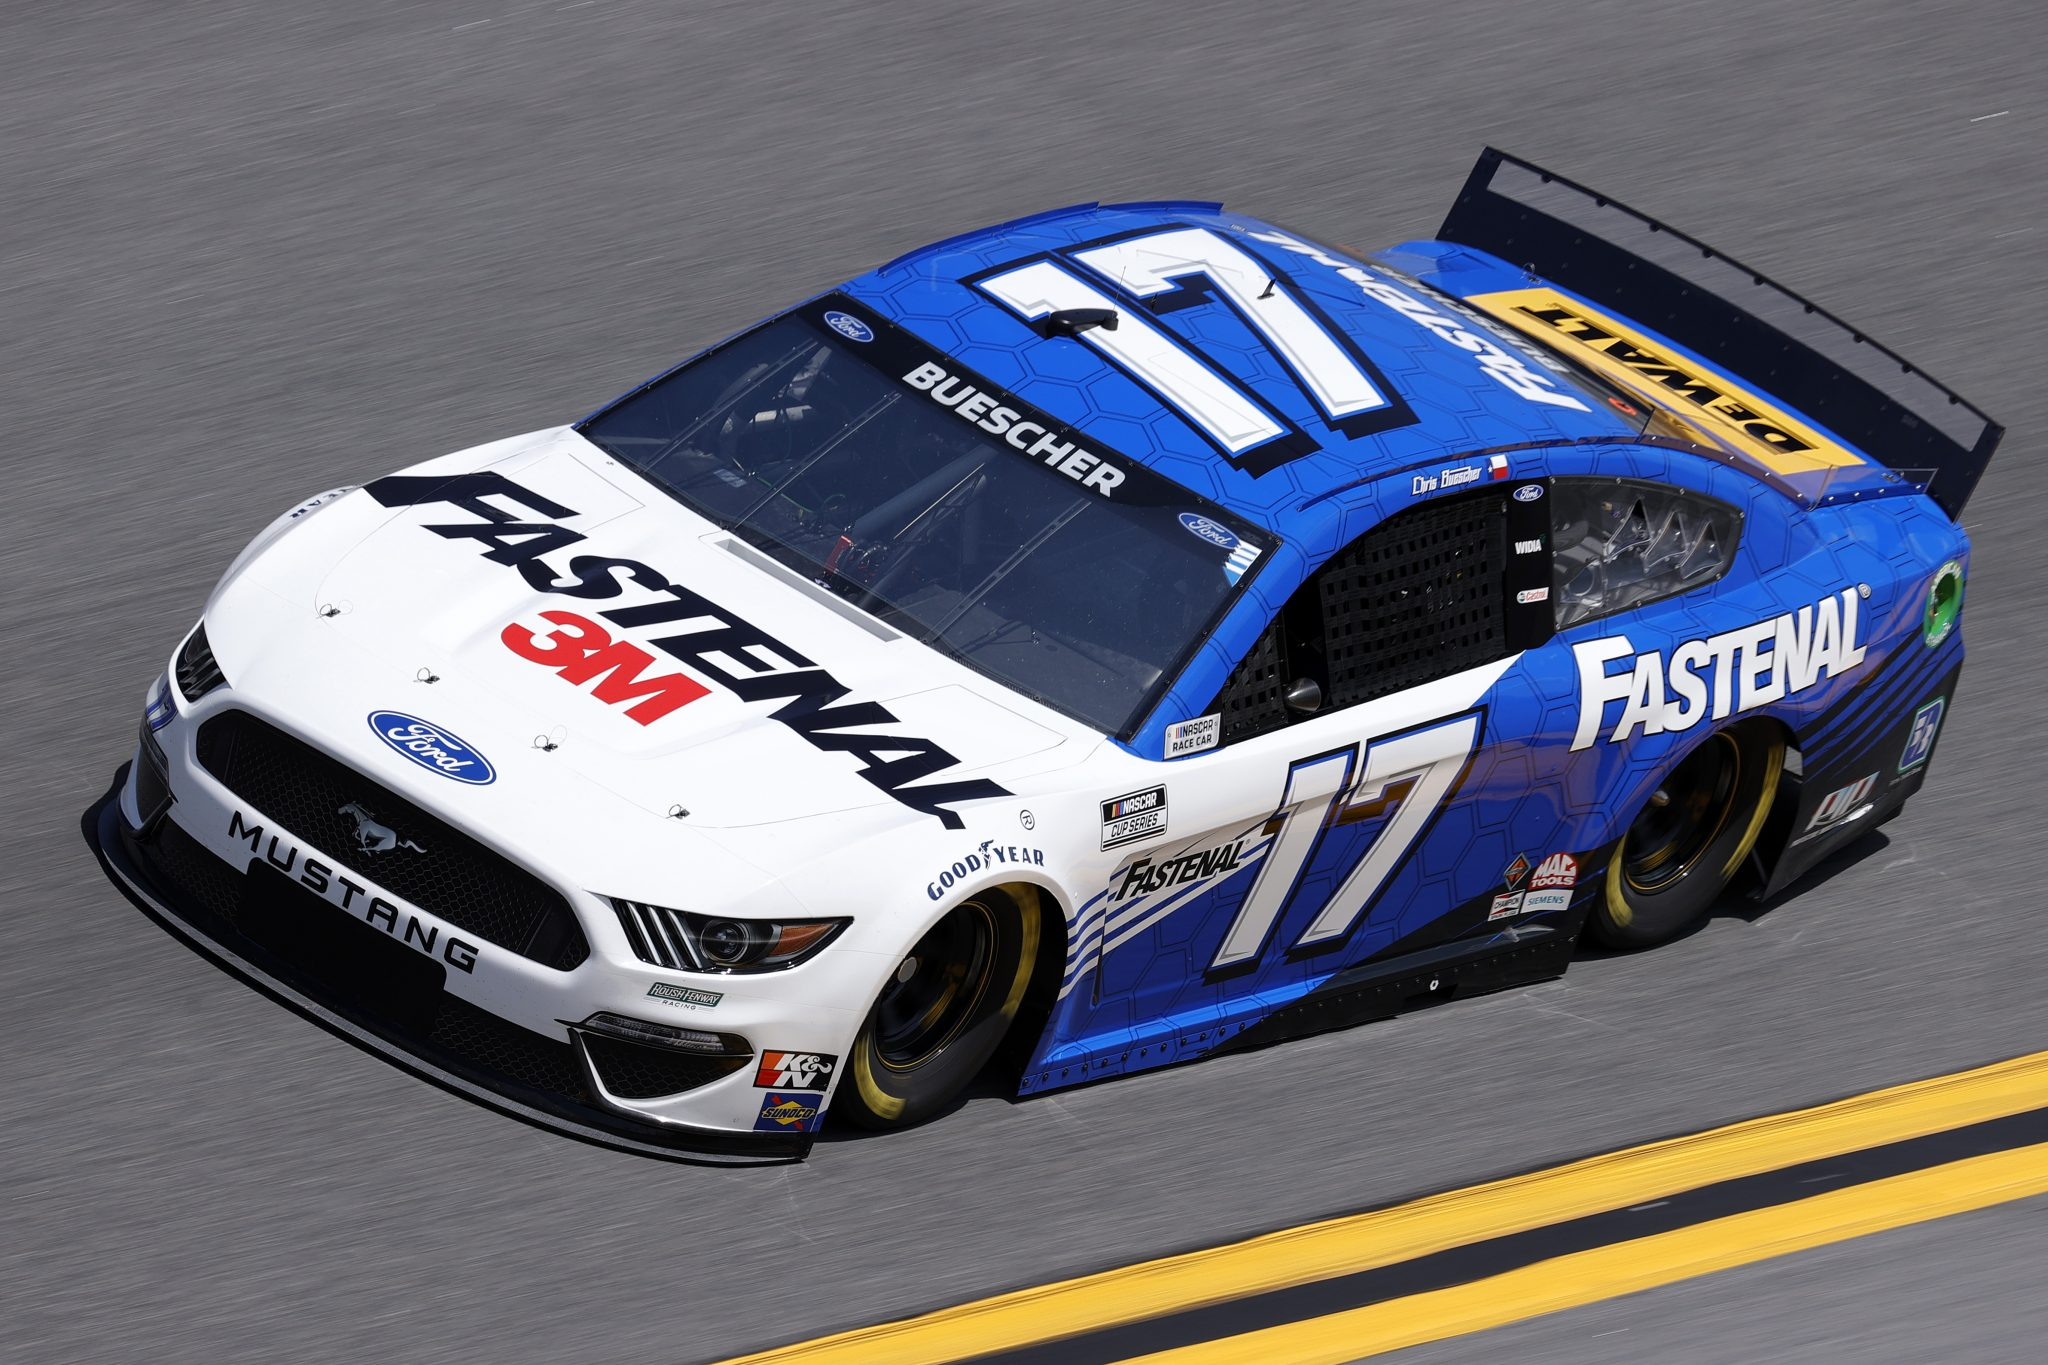 DAYTONA BEACH, FLORIDA - FEBRUARY 10: Chris Buescher, driver of the #17 Fastenal Ford, drives during practice for the NASCAR Cup Series 63rd Annual Daytona 500 at Daytona International Speedway on February 10, 2021 in Daytona Beach, Florida. (Photo by Jared C. Tilton/Getty Images) | Getty Images